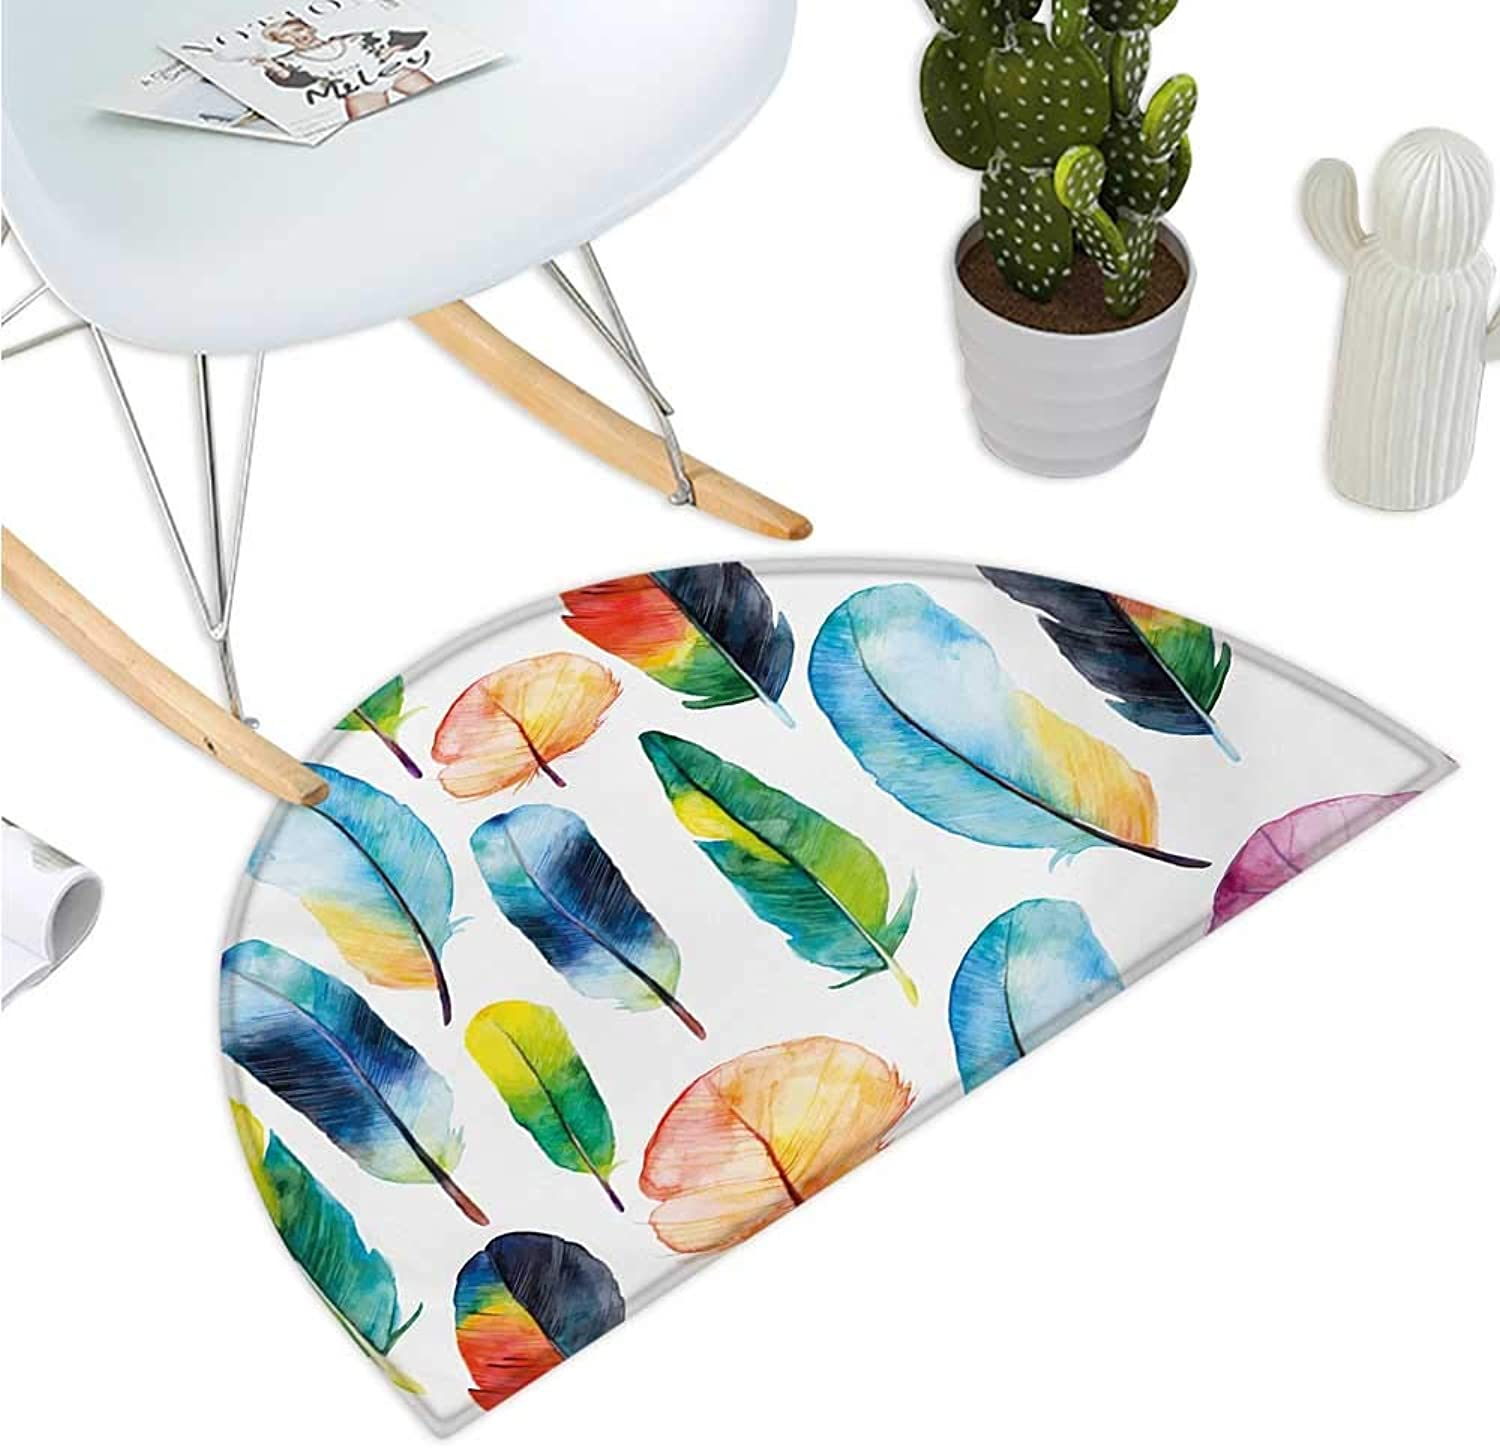 colorful Half Round Door mats Watercolor Feathers Hand Drawn Pattern Birds Animals Theme Artistic Illustration Entry Door Mat H 47.2  xD 70.8  Multicolor